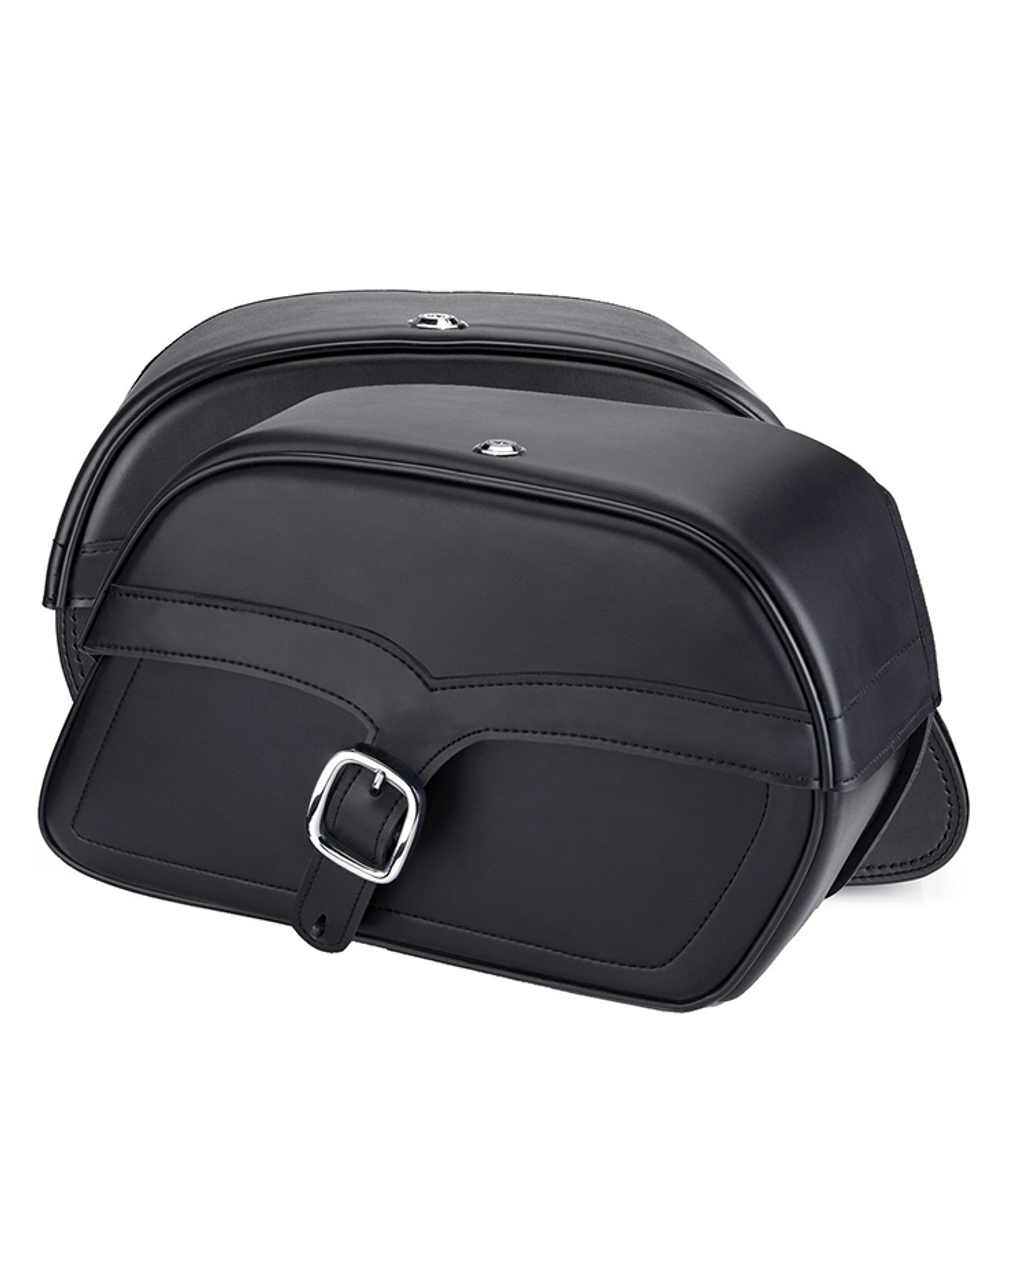 Viking Large Single Strap Shock Cutout Slanted Motorcycle Saddlebags For Harley Sportster 1200 Low XL1200L Both Bags View